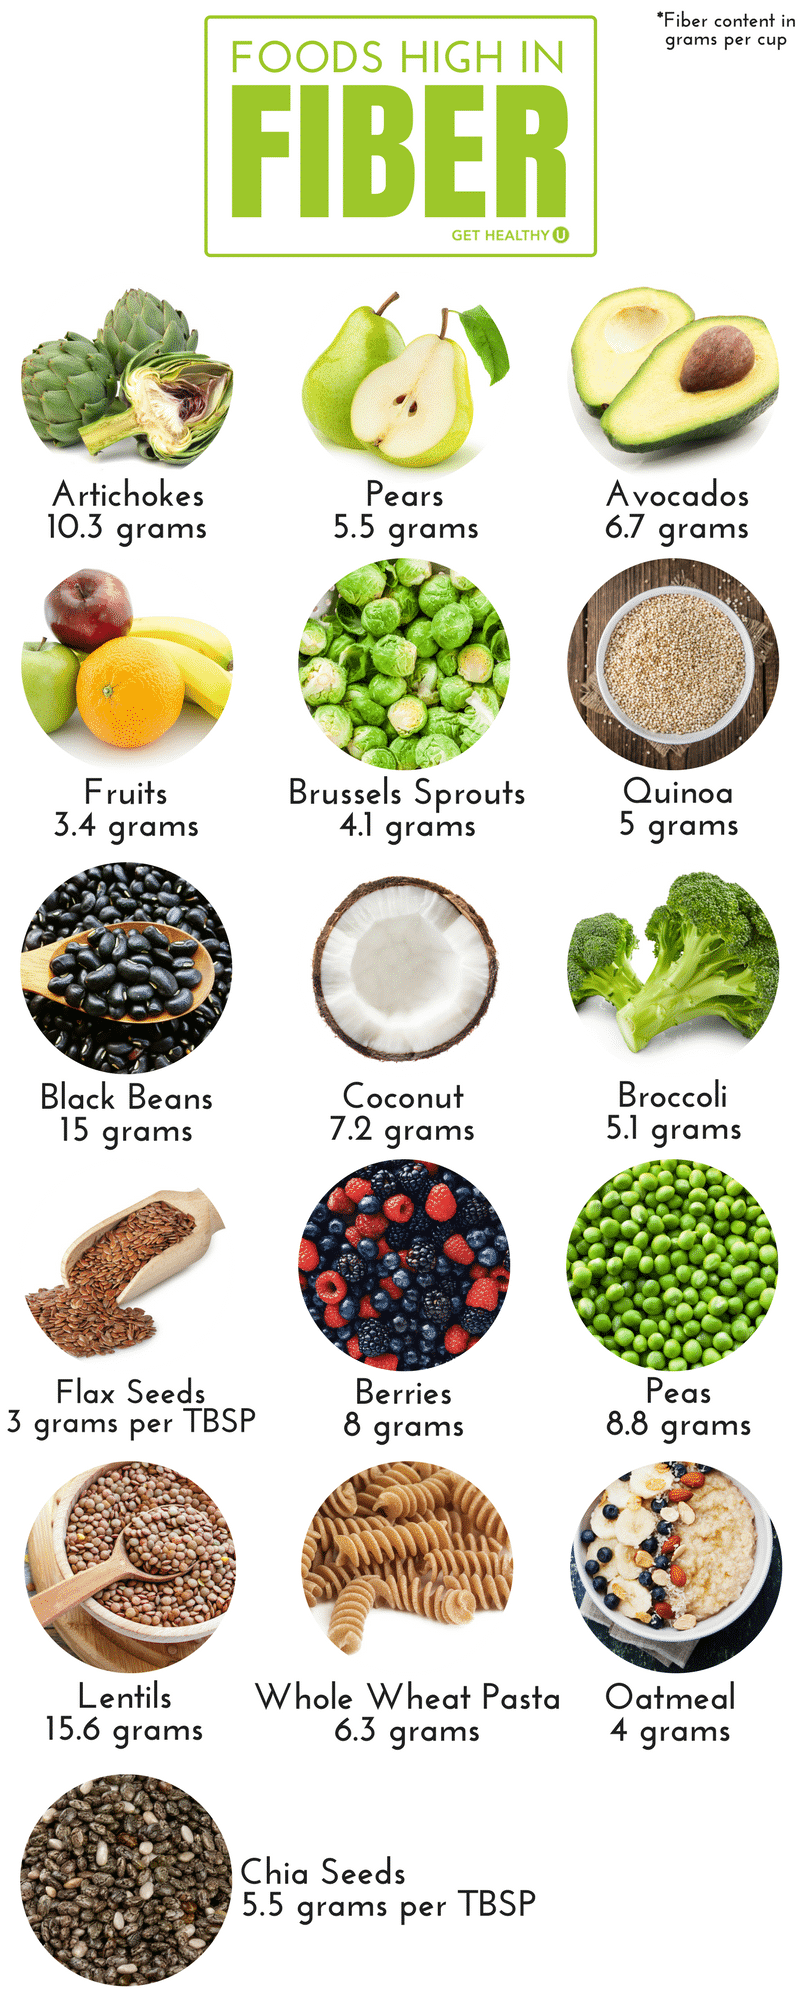 Check out this graphic that depicts foods that are high in fiber that will benefit your diet!